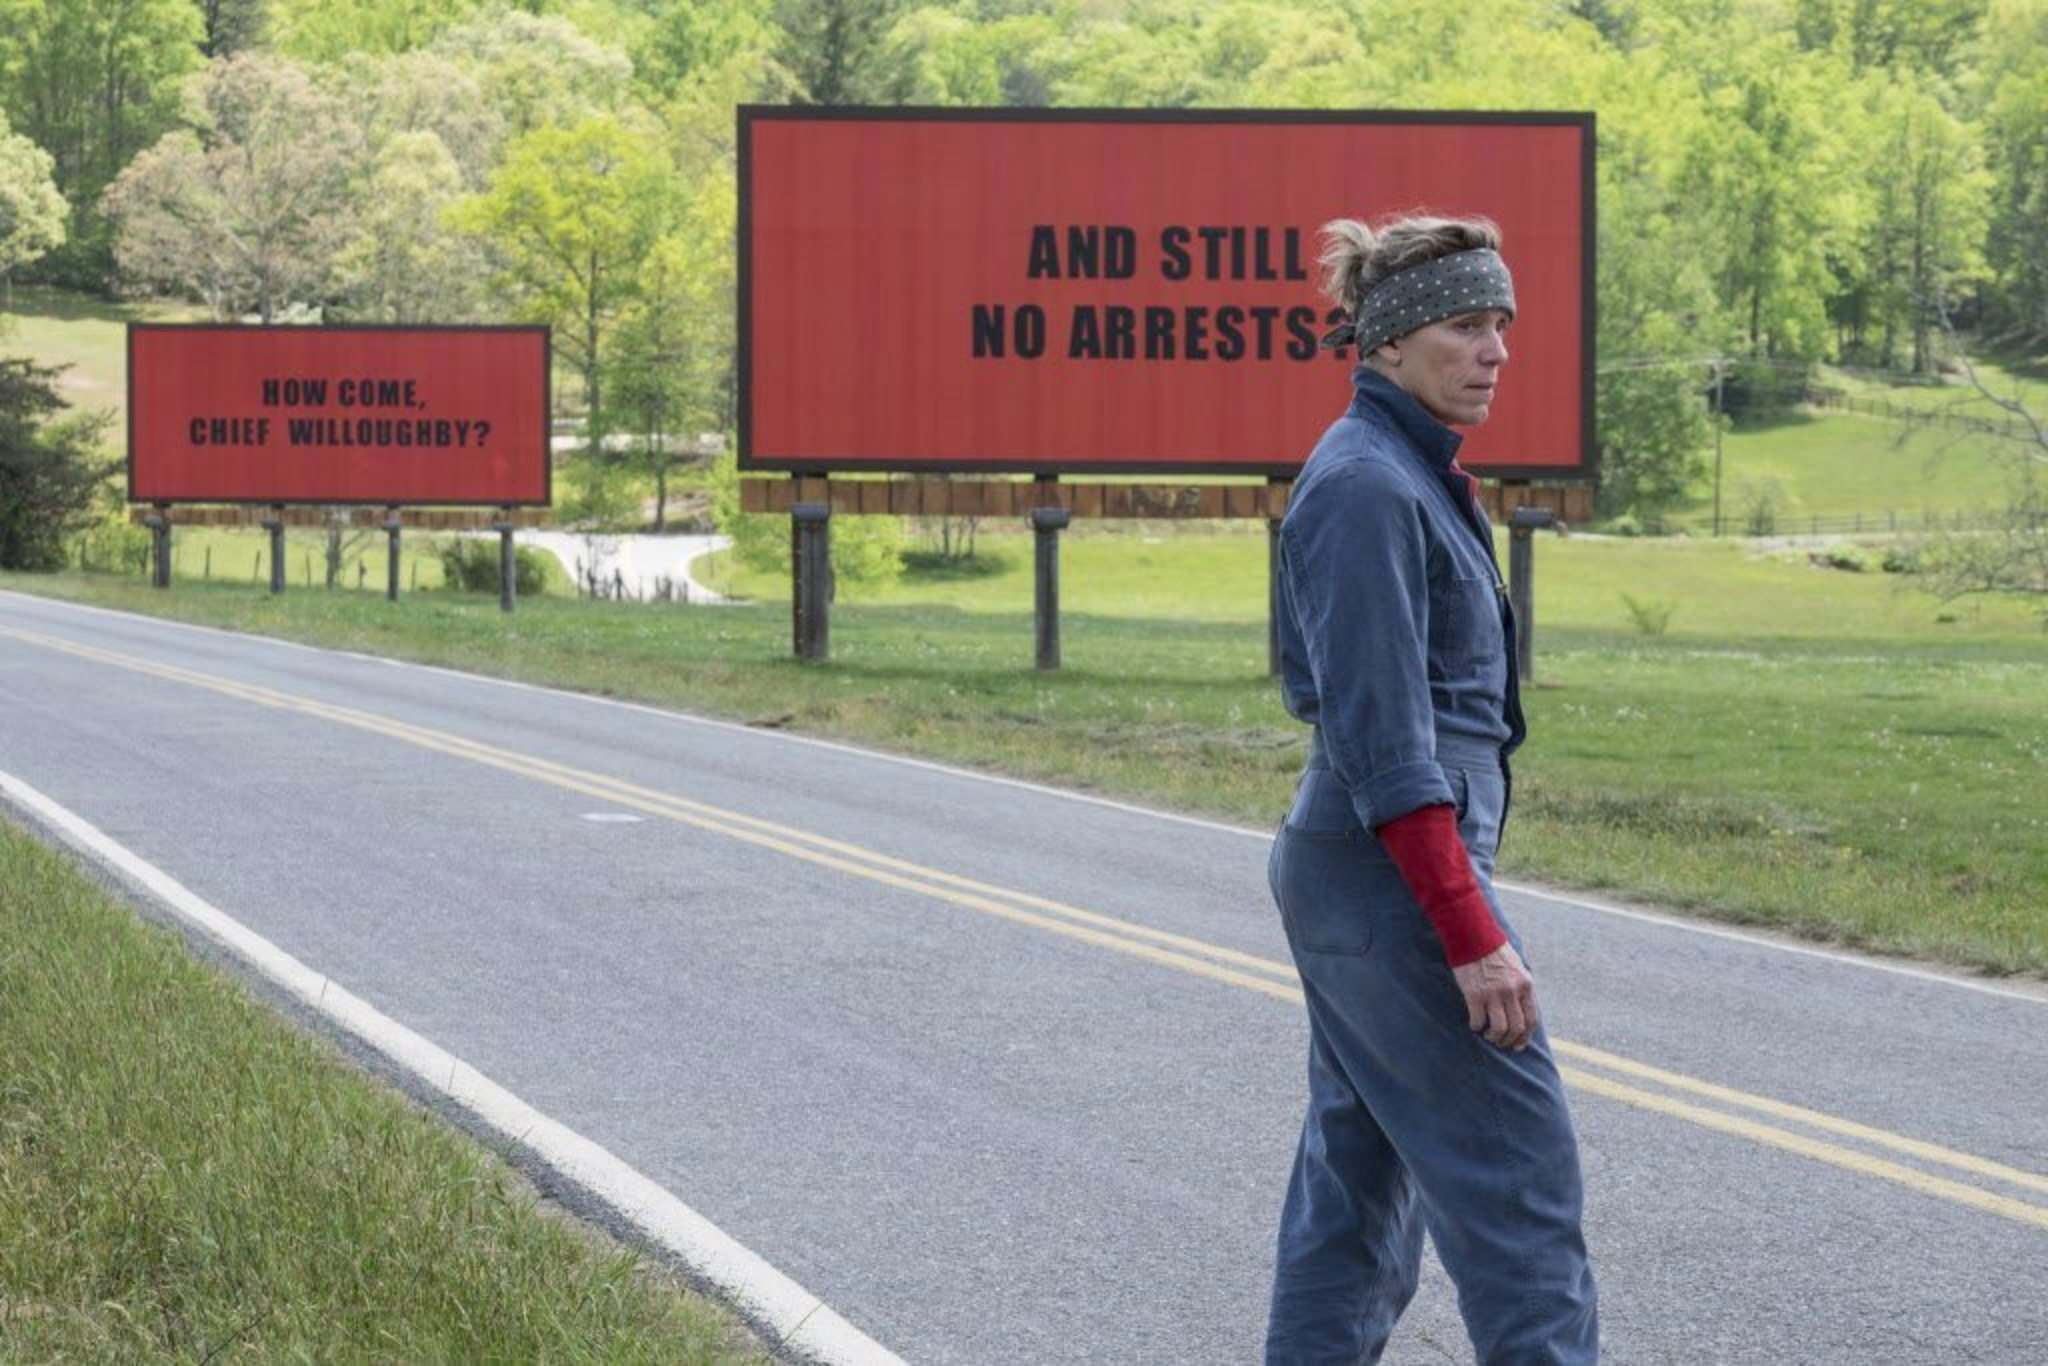 Frances McDormand in a scene from Three Billboards Outside Ebbing, Missouri. (Fox Searchlight)